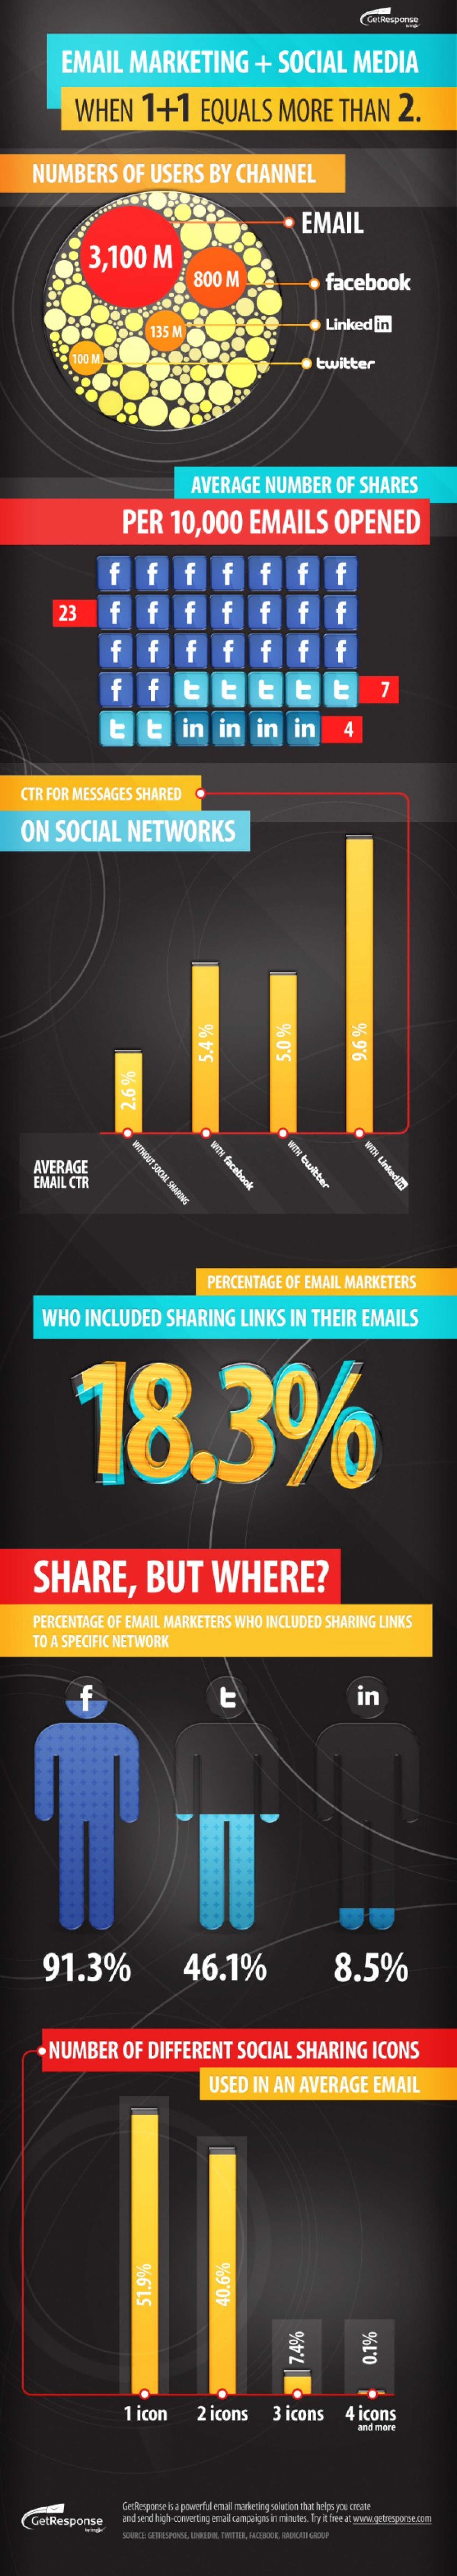 Social Sharing Boosts Email CTR Up To 115%  Infographic